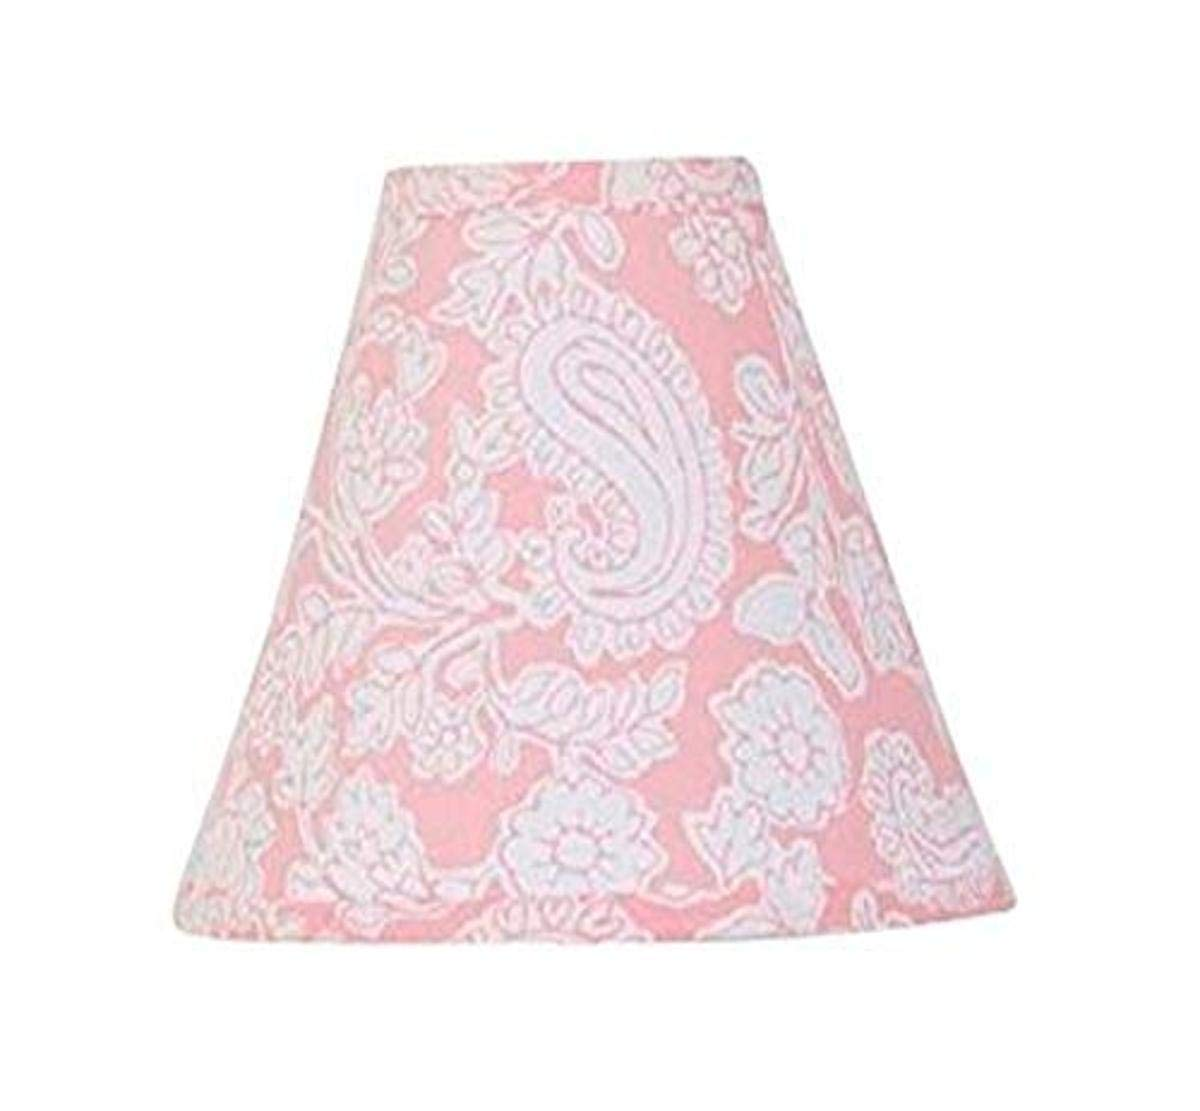 Girly Cotton Tale Designs Standard Lamp Shade